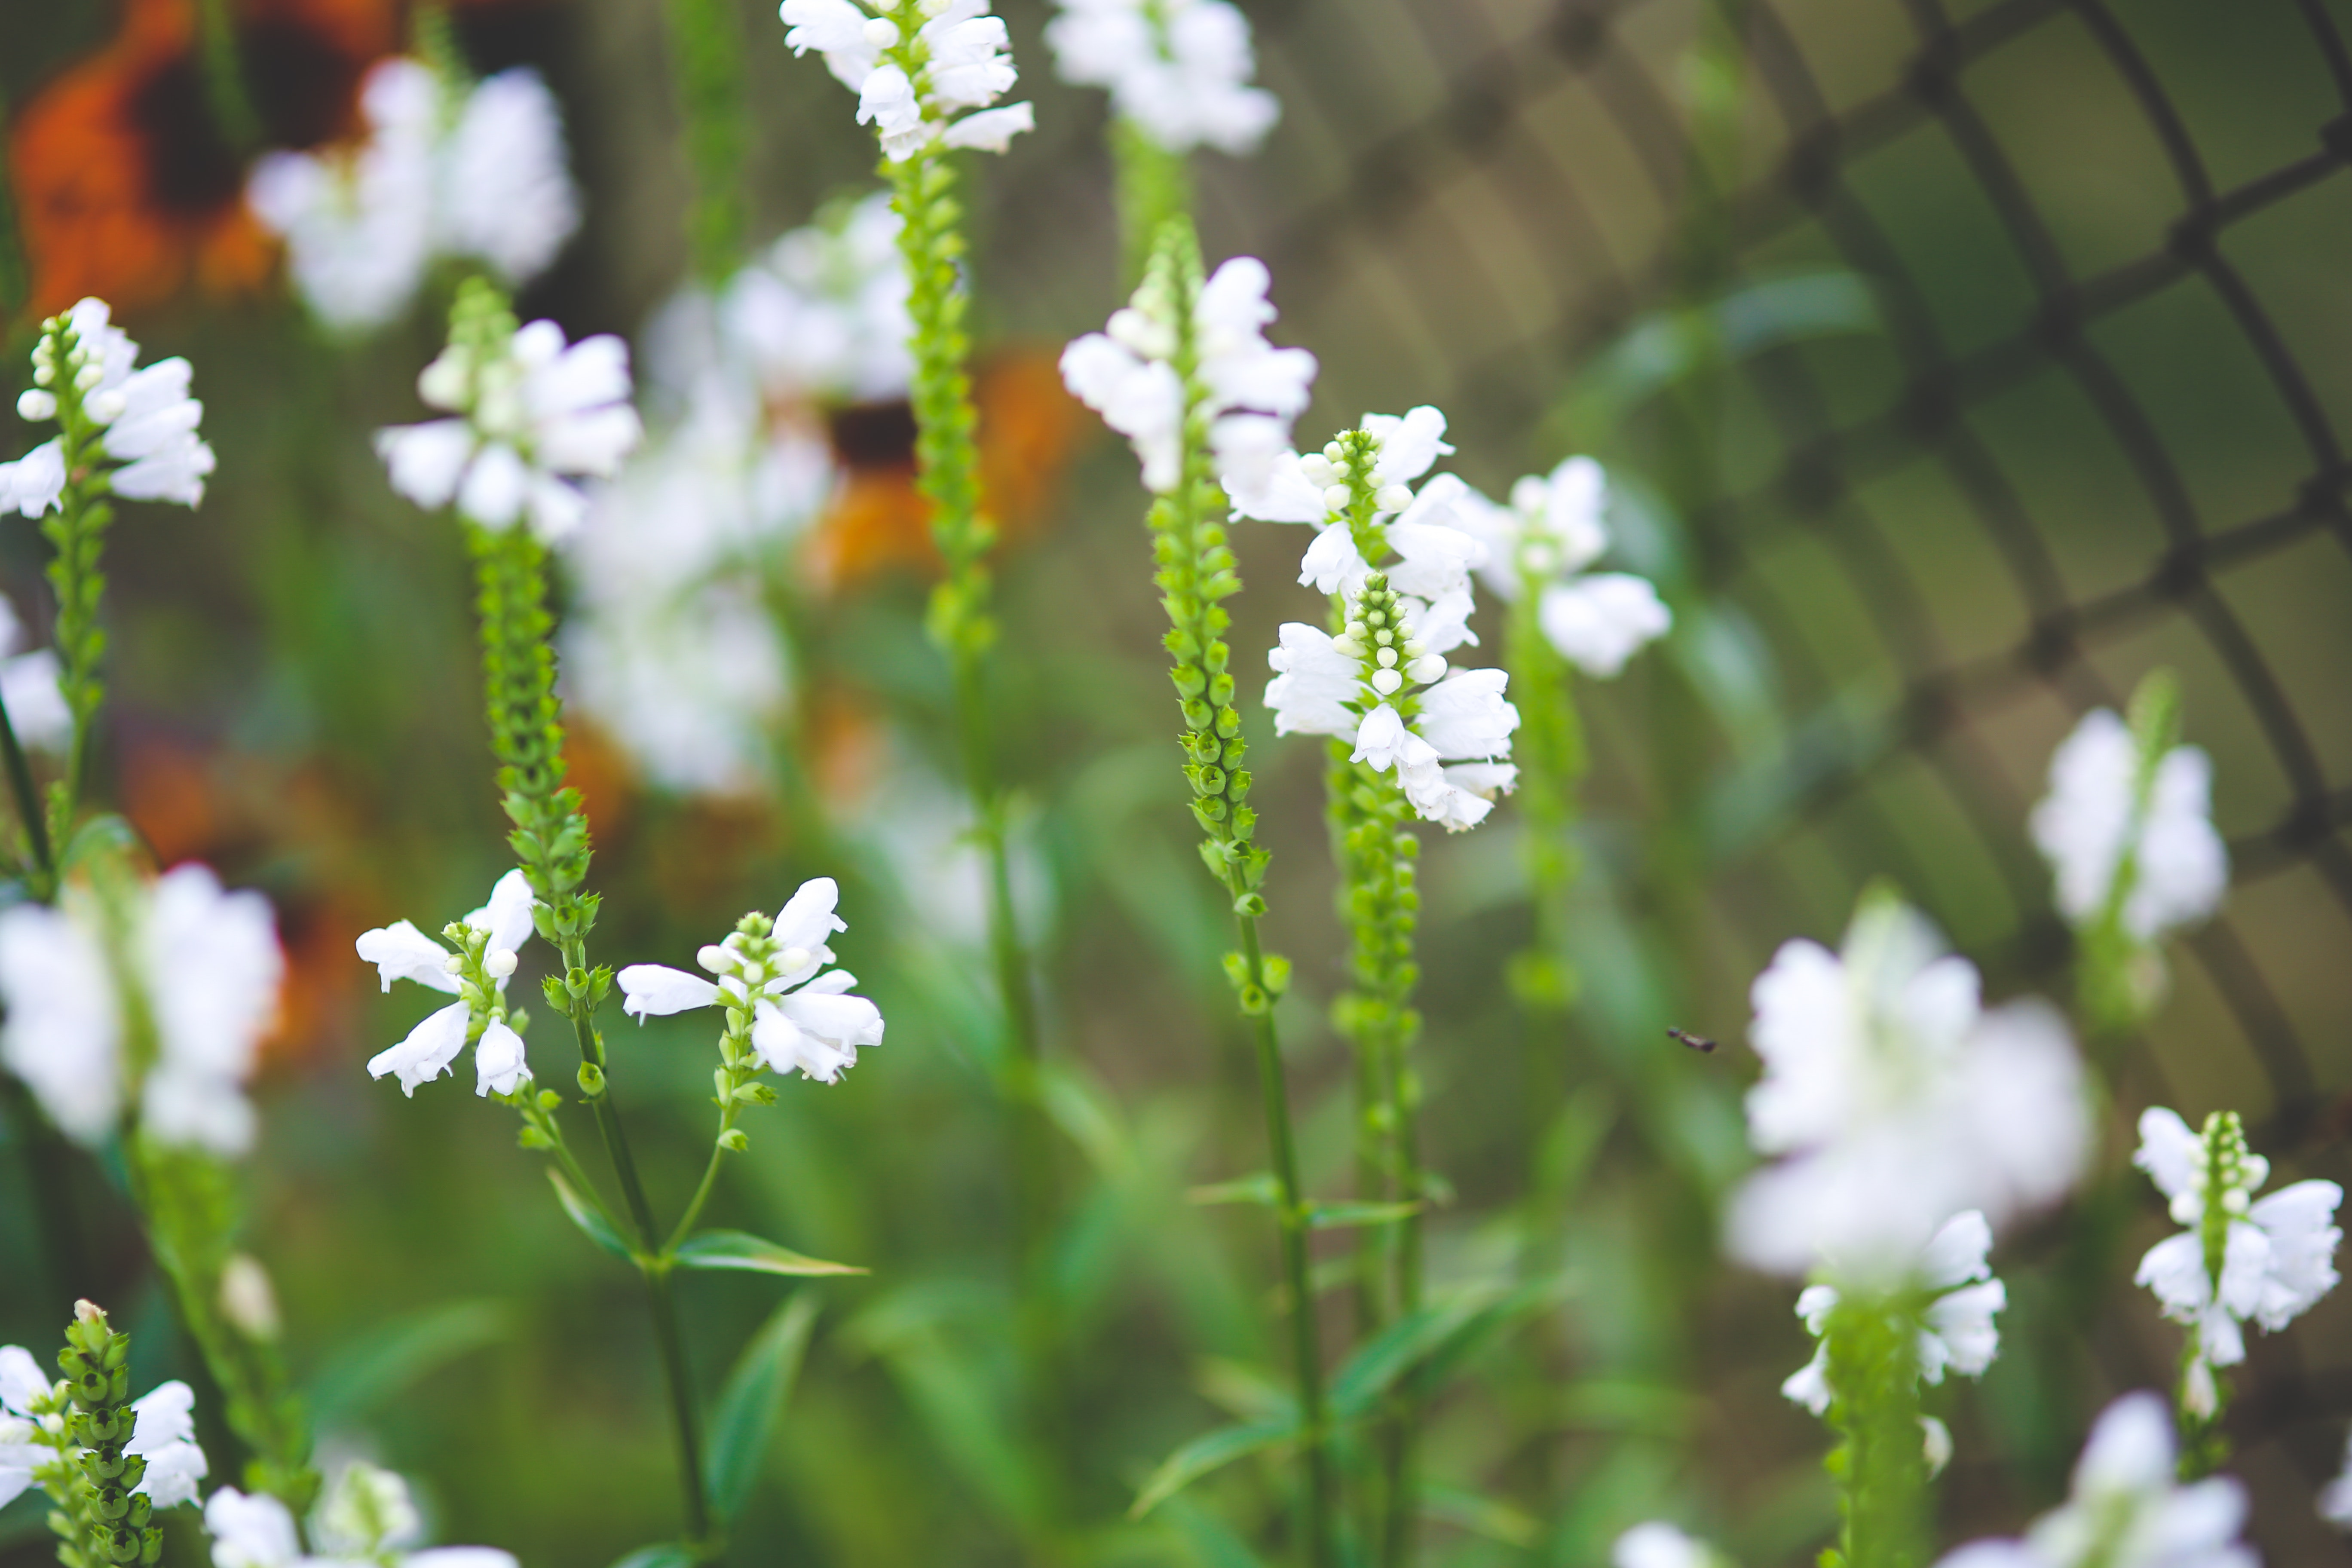 White little flowers, Flowers, Garden, Nature, Plant, HQ Photo